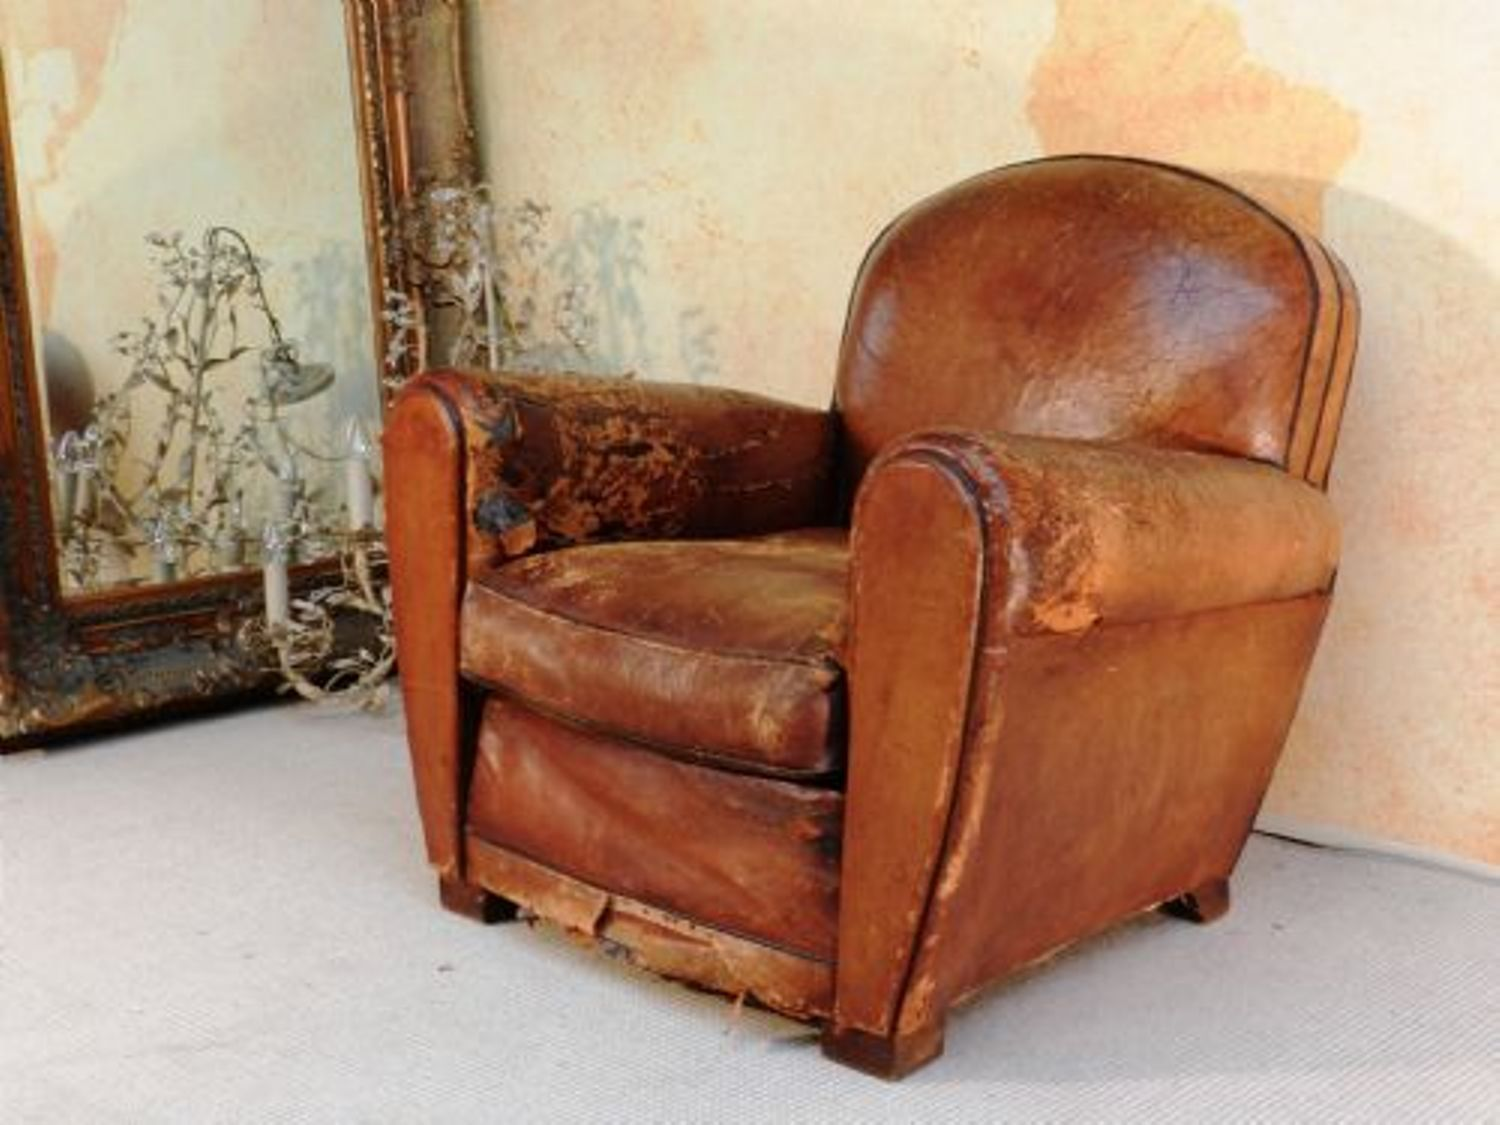 Distressed Leather Club Chair Hjzyxgb - Distressed Leather Club Chair Hjzyxgb Club Chairs Pinterest